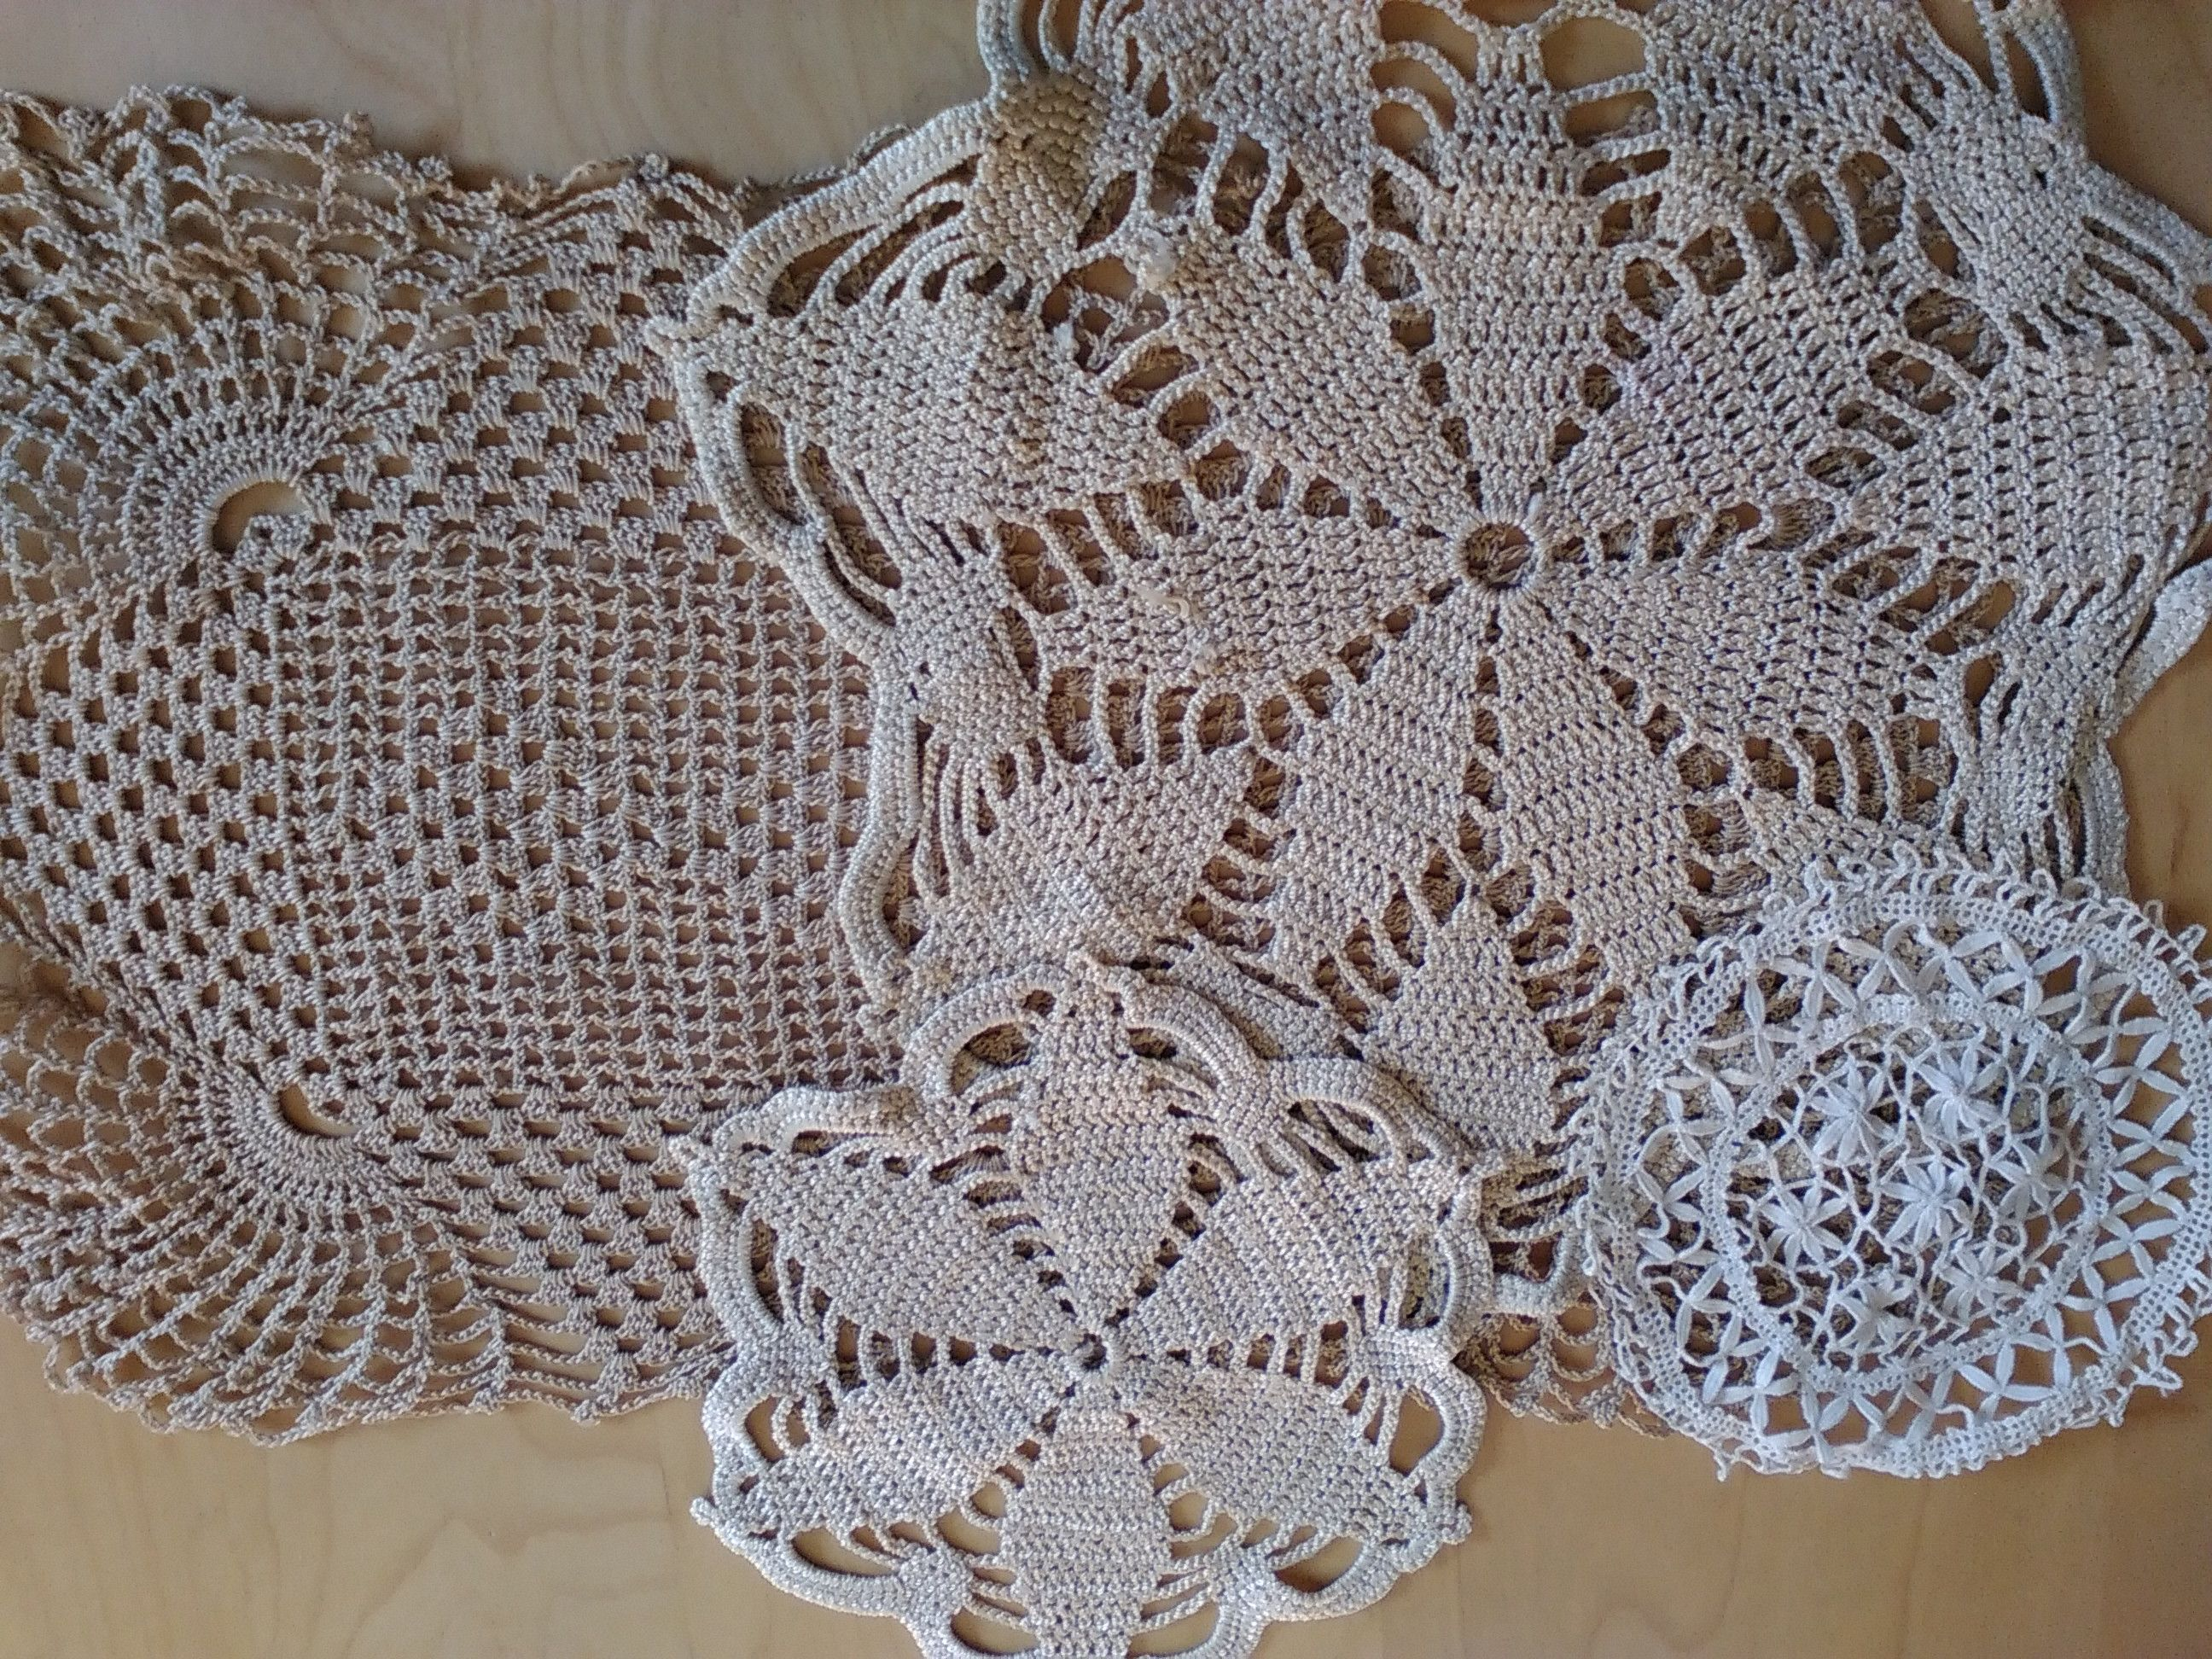 Crocheted doilies etc. bought at Car Boot Sale | lariane | Pinterest